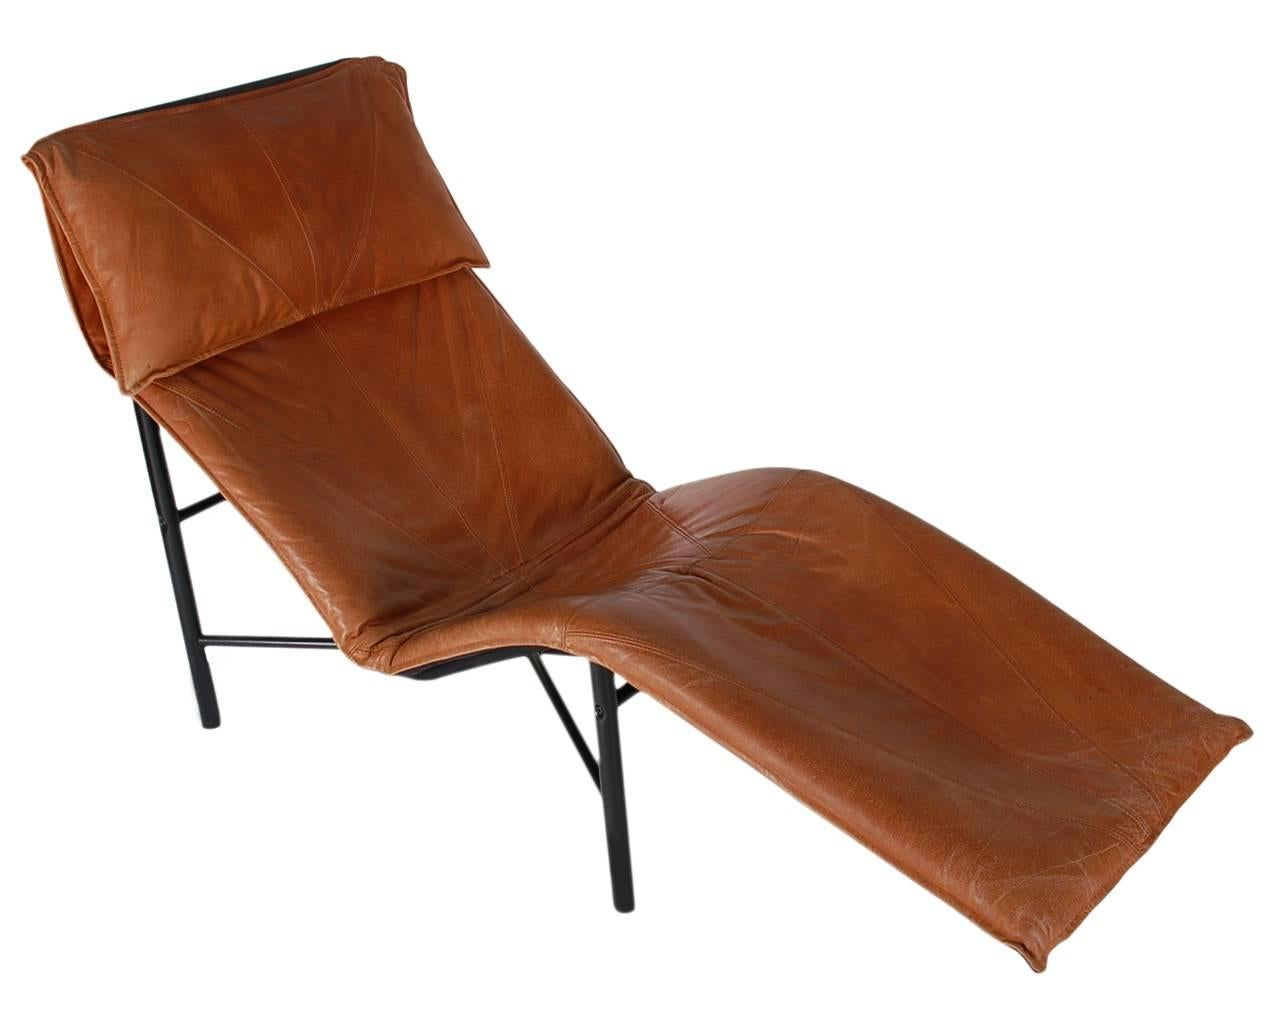 Scandinavian Modern Midcentury Danish Modern Brown Leather Chaise Lounge Chair by Tord Björklund For Sale  sc 1 st  1stDibs & Midcentury Danish Modern Brown Leather Chaise Lounge Chair by Tord ...